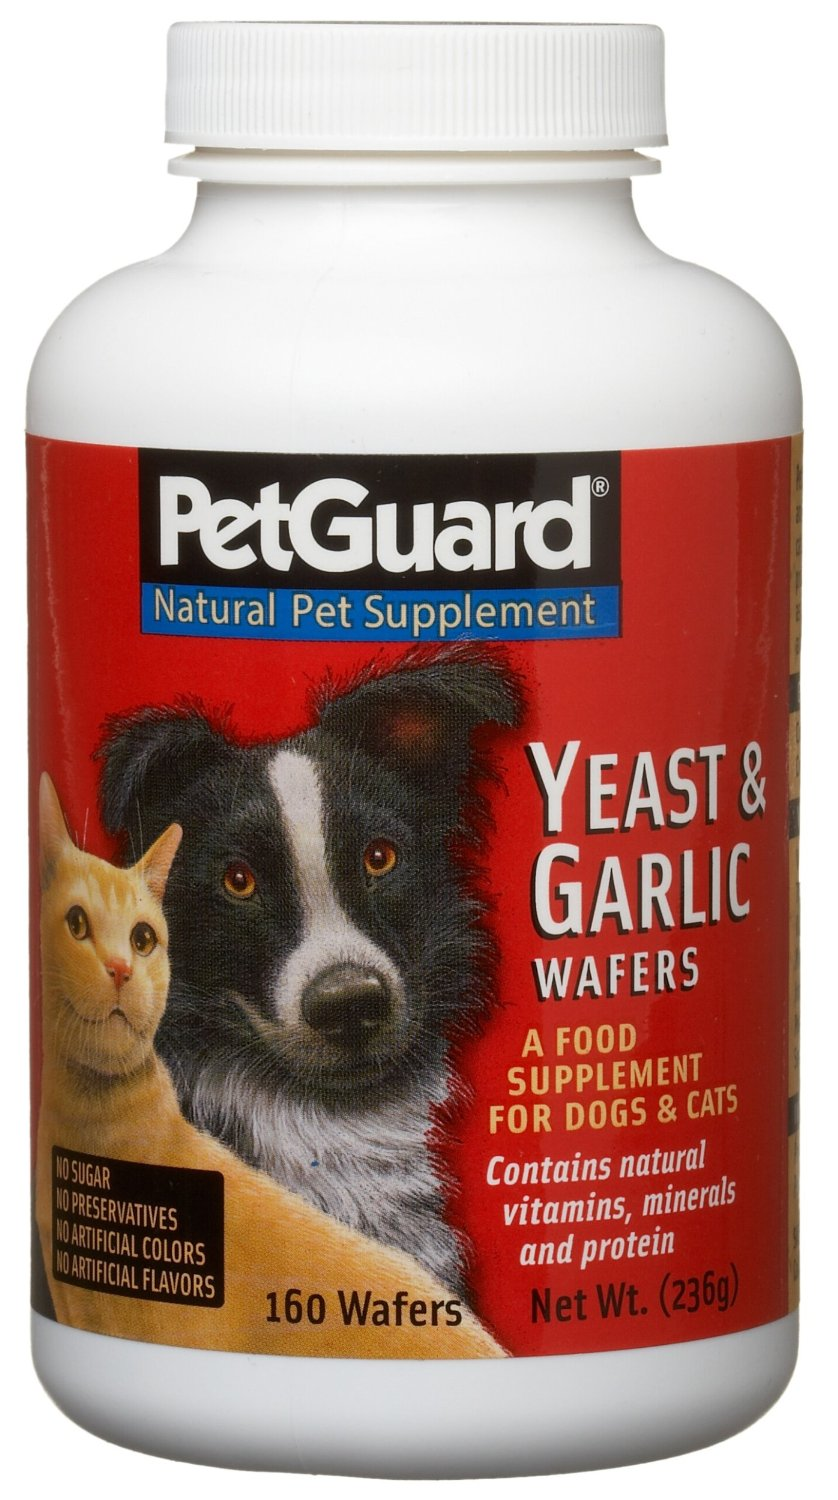 PetGuard Yeast & Garlic Dog Supplements